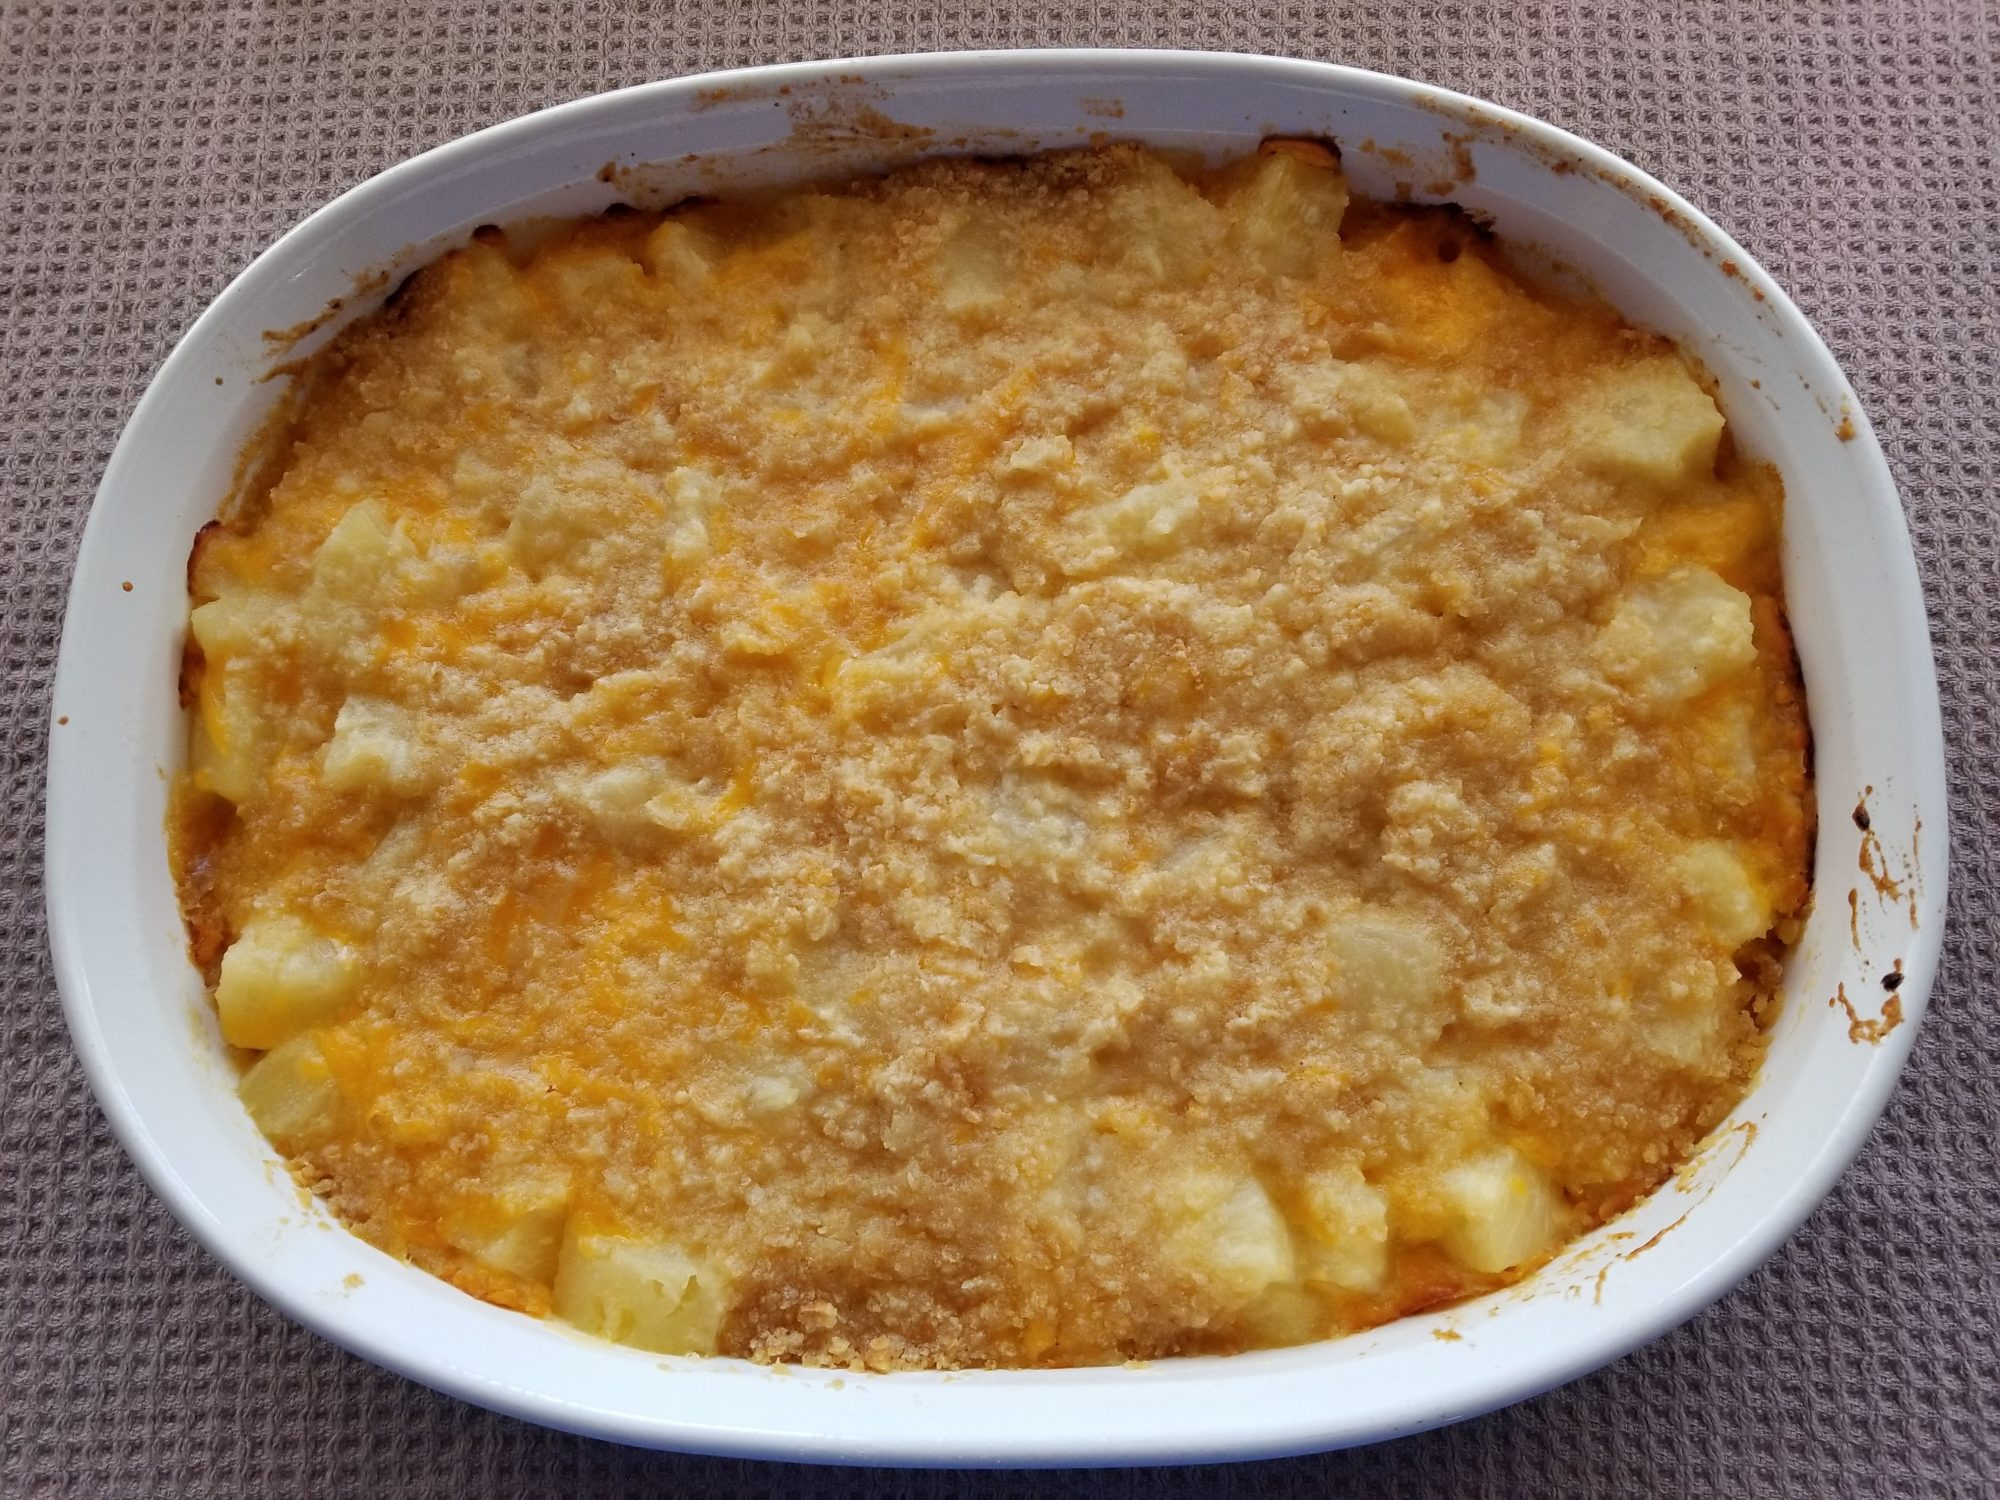 pineapple cheddar cheese casserole